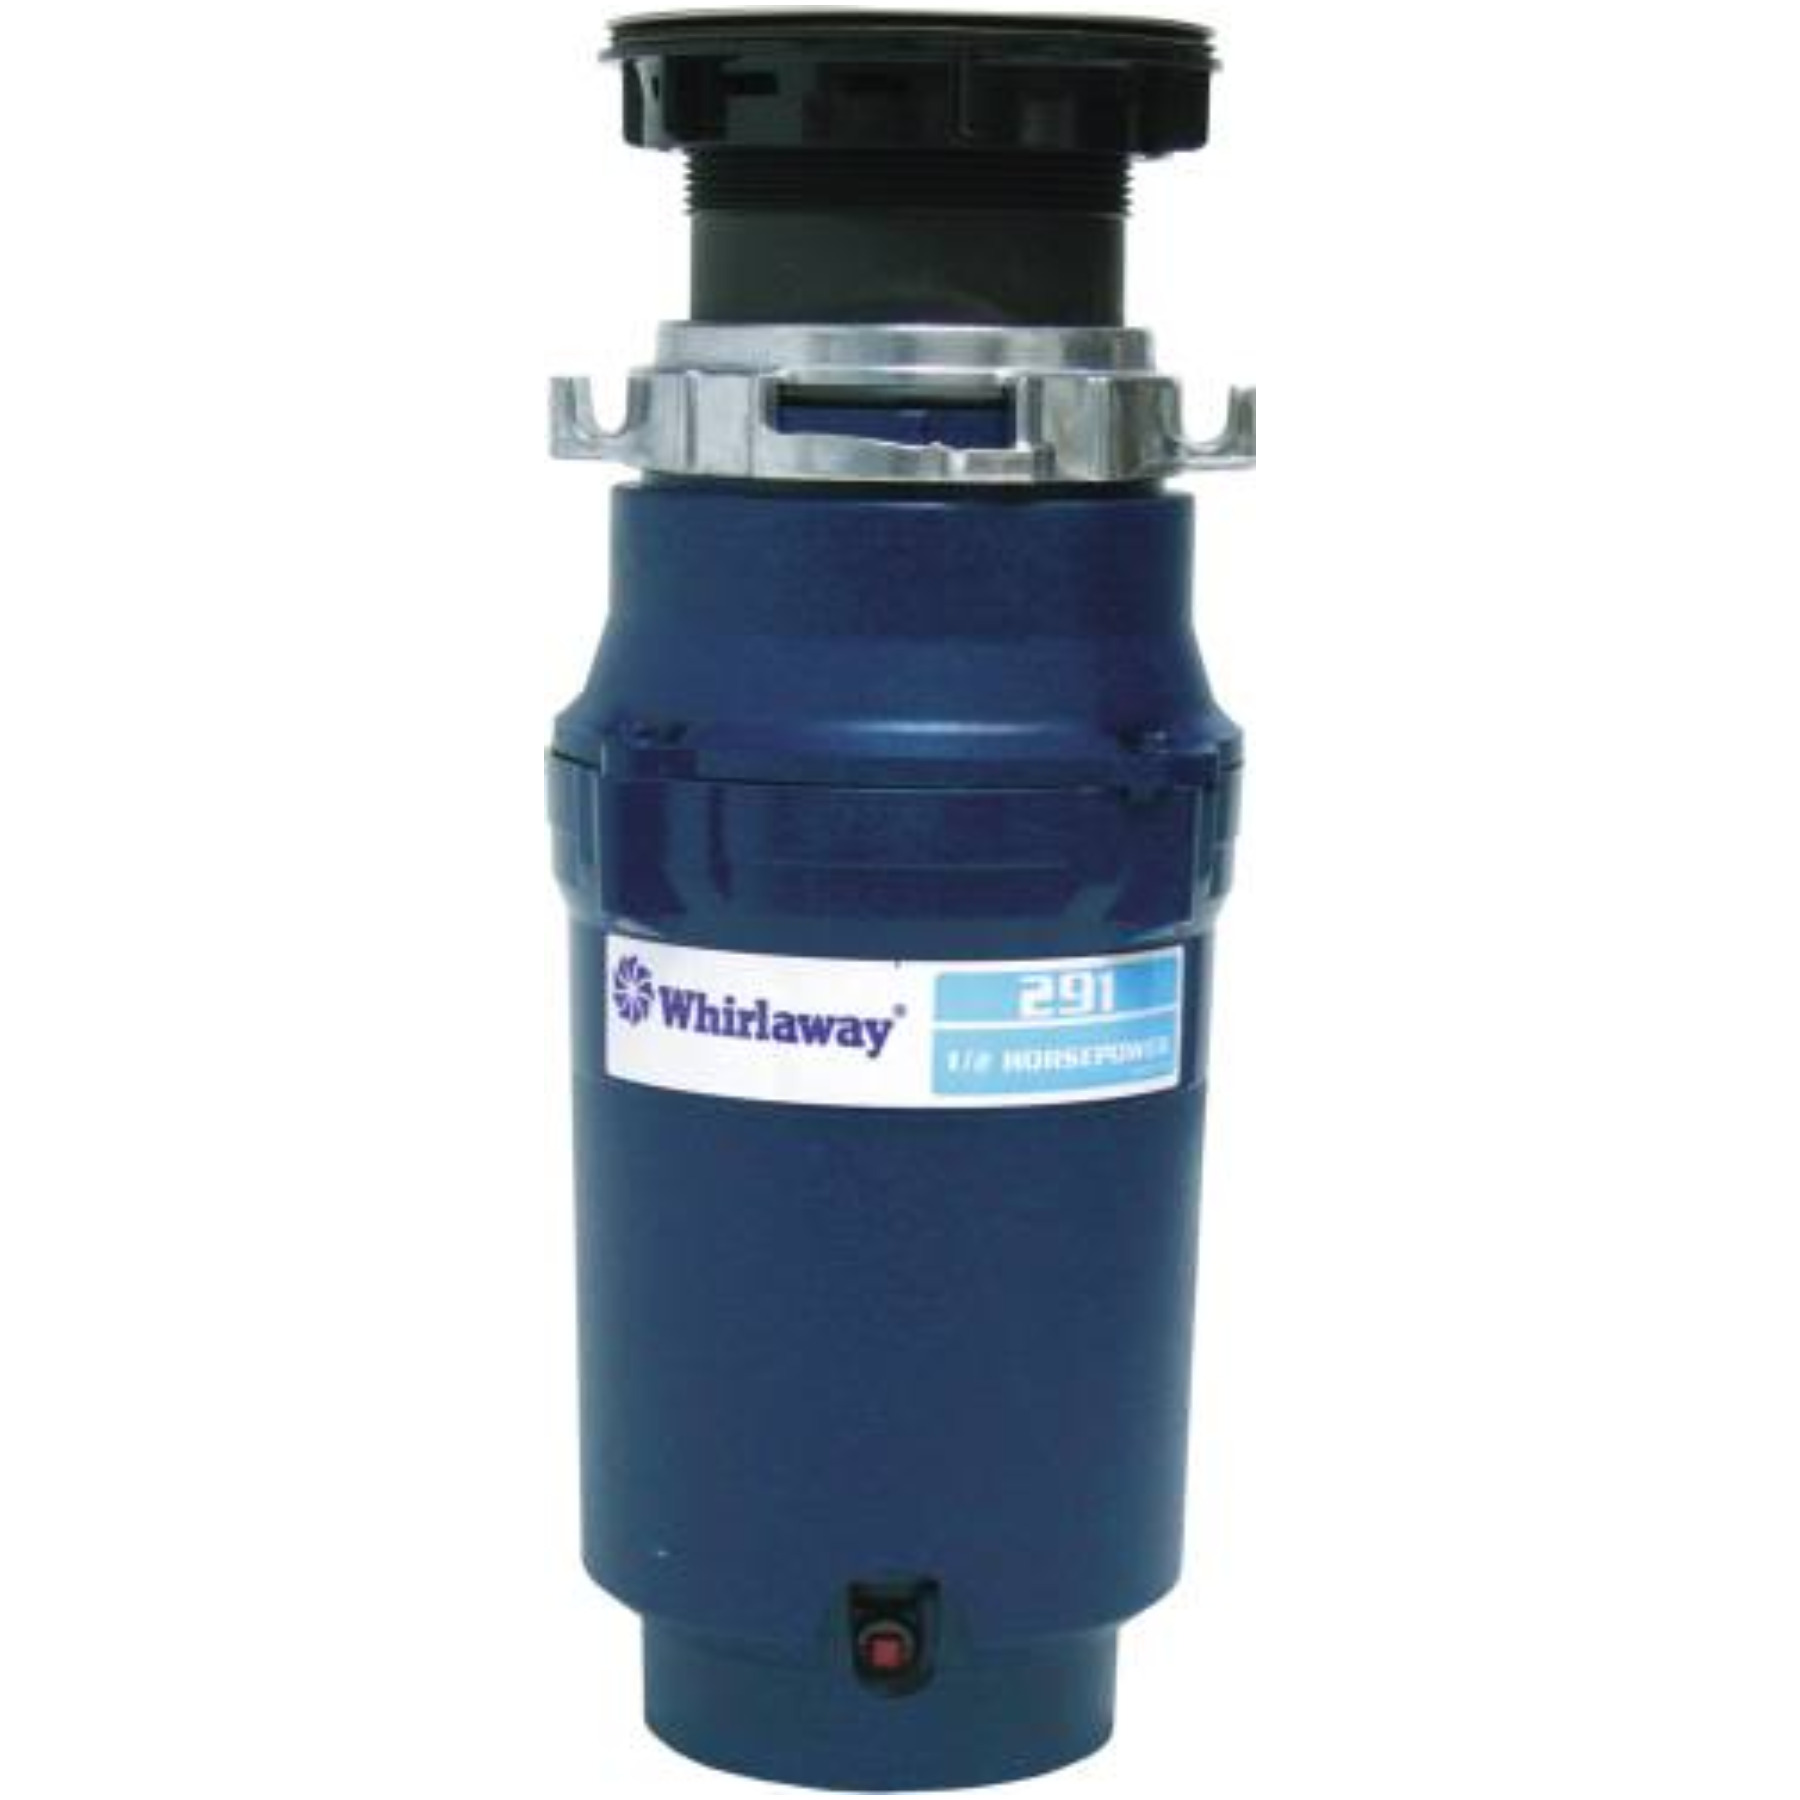 WHIRLAWAY GARBAGE DISPOSAL WITH PLUG 1/2 HP